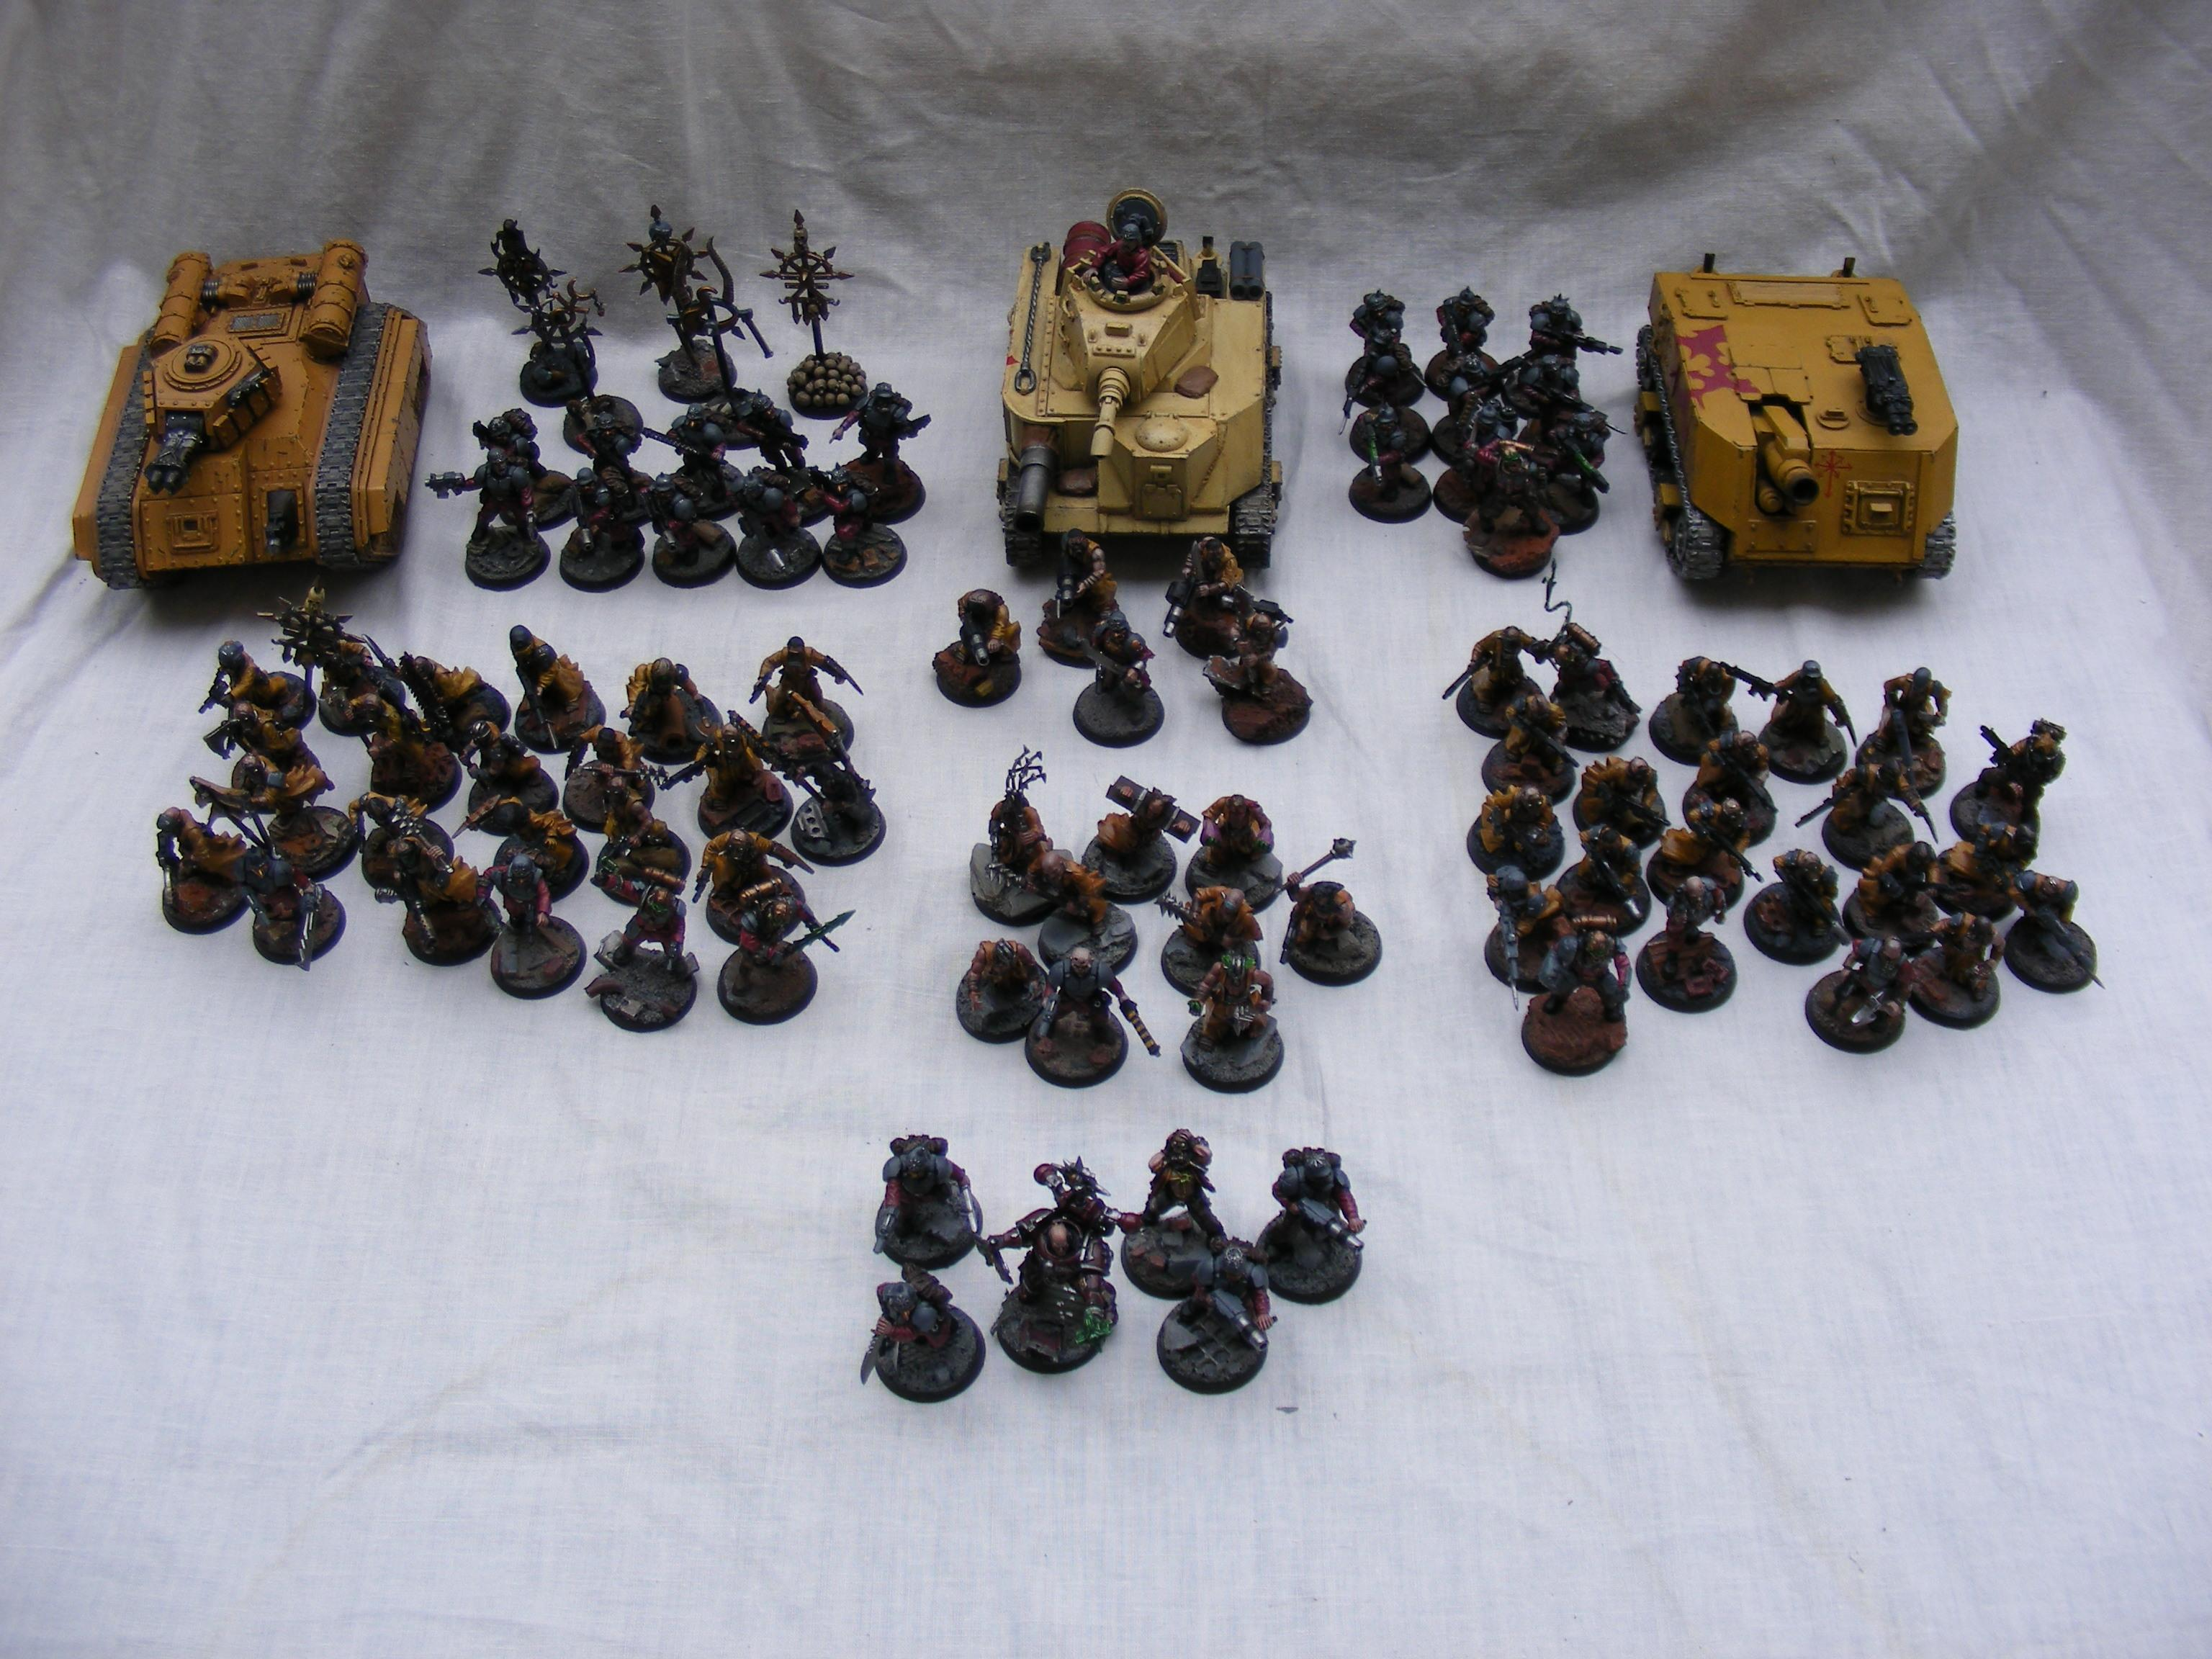 Chaos, Cultists, Imperial Guard, Lost And The Damned, Renegade, Renegades, Traitor, Warhammer 40,000